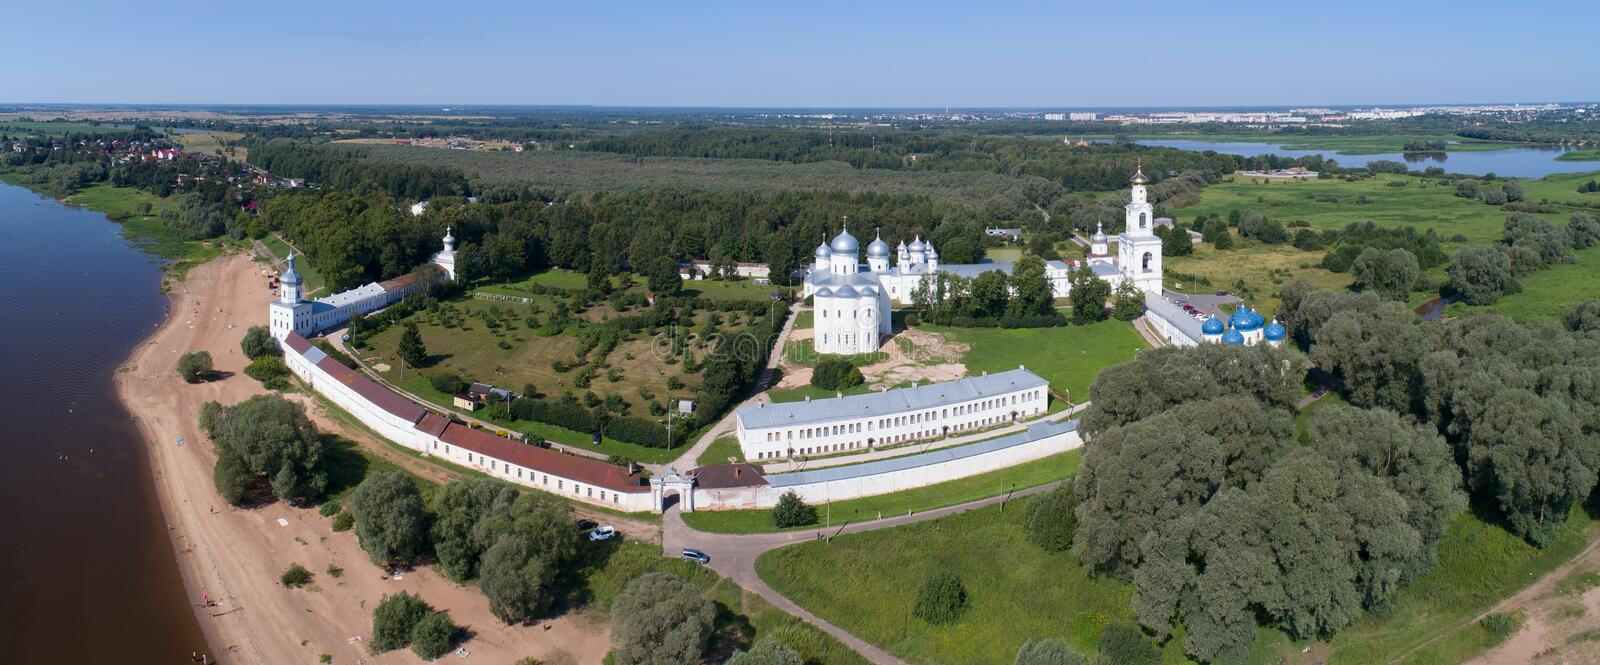 Aerial view on St. George Yuriev Orthodox Male Monastery in Veliky Novgorod stock images